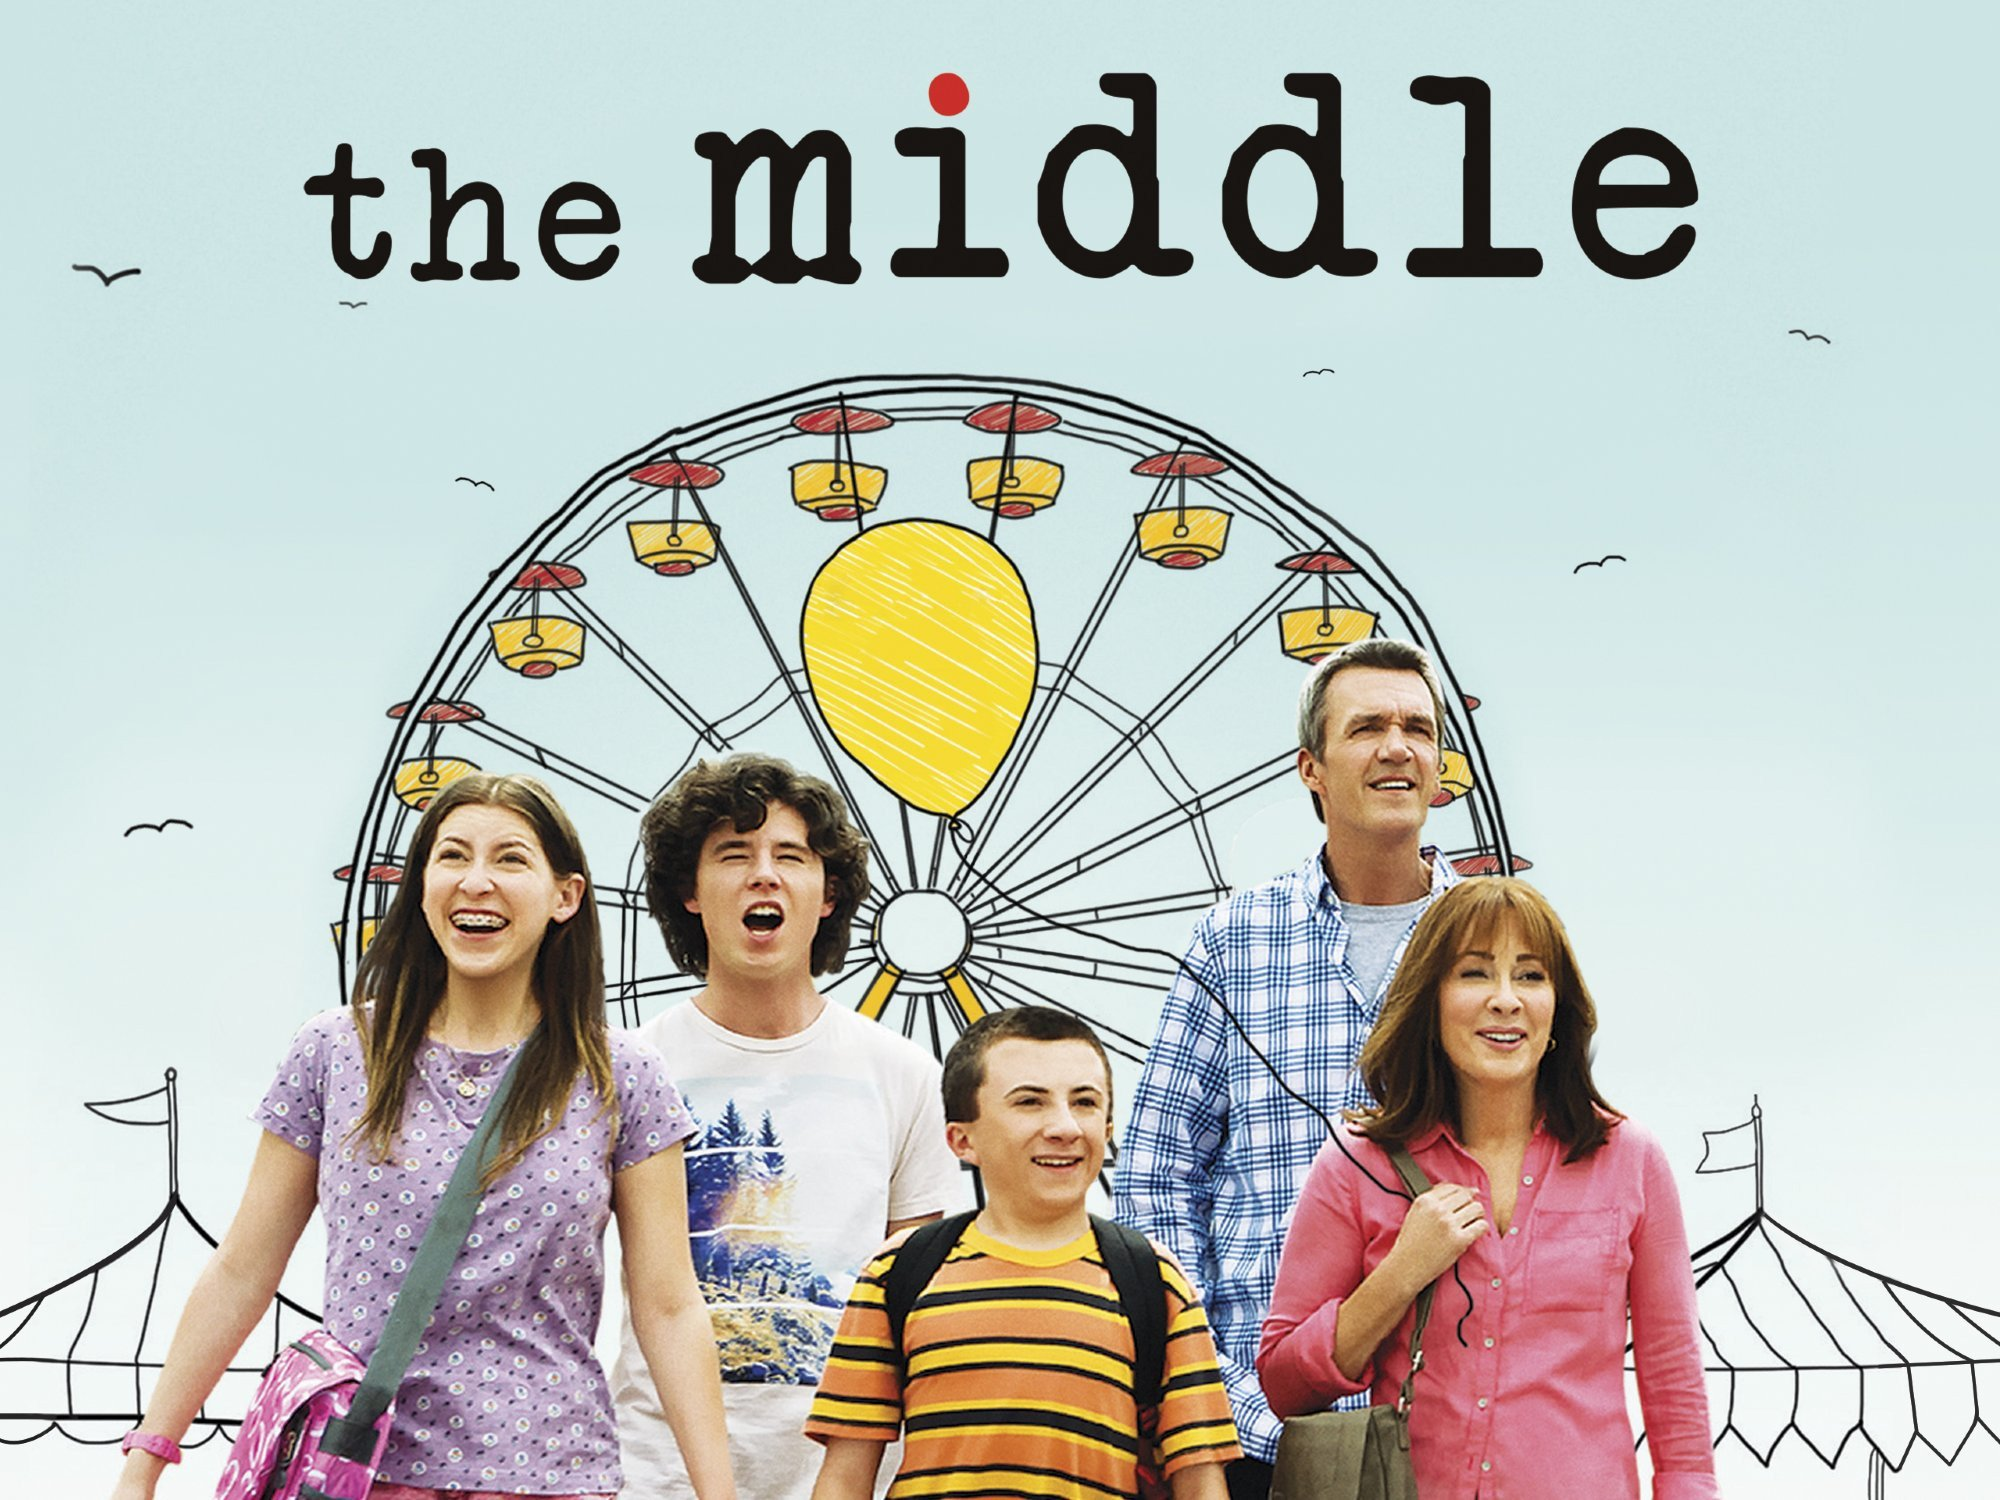 Amazonde The Middle Staffel 6 Ansehen Prime Video